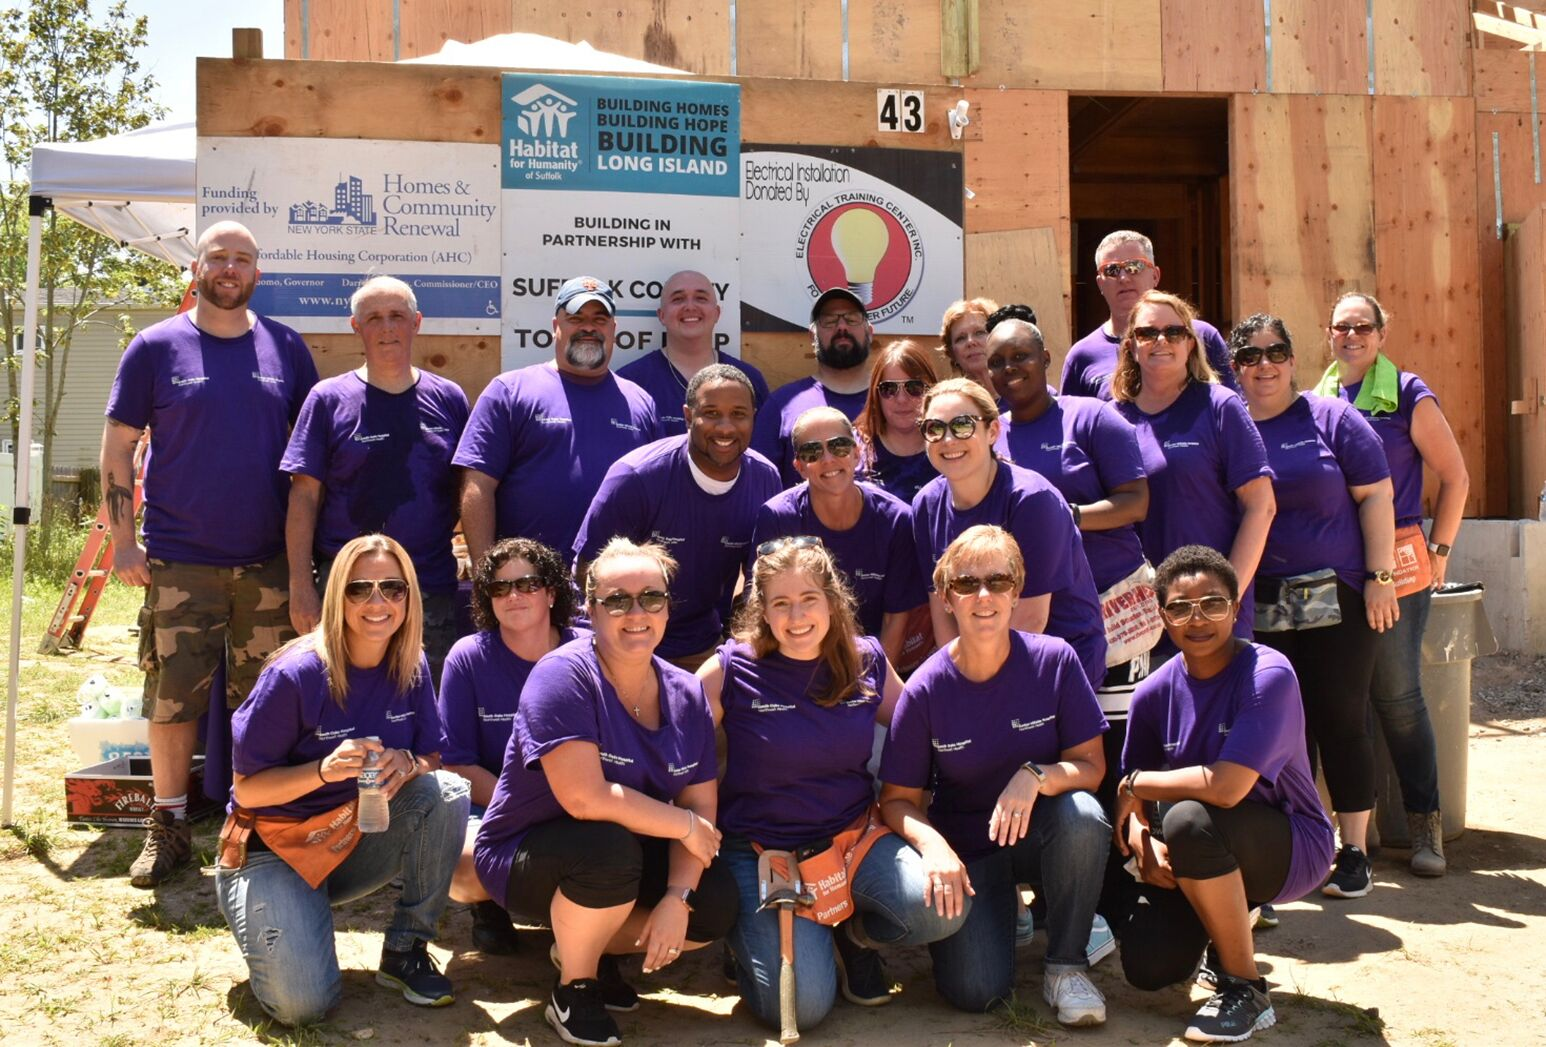 South Oaks Hospital employees participate in a Habitat for Humanity build in Central Islip.